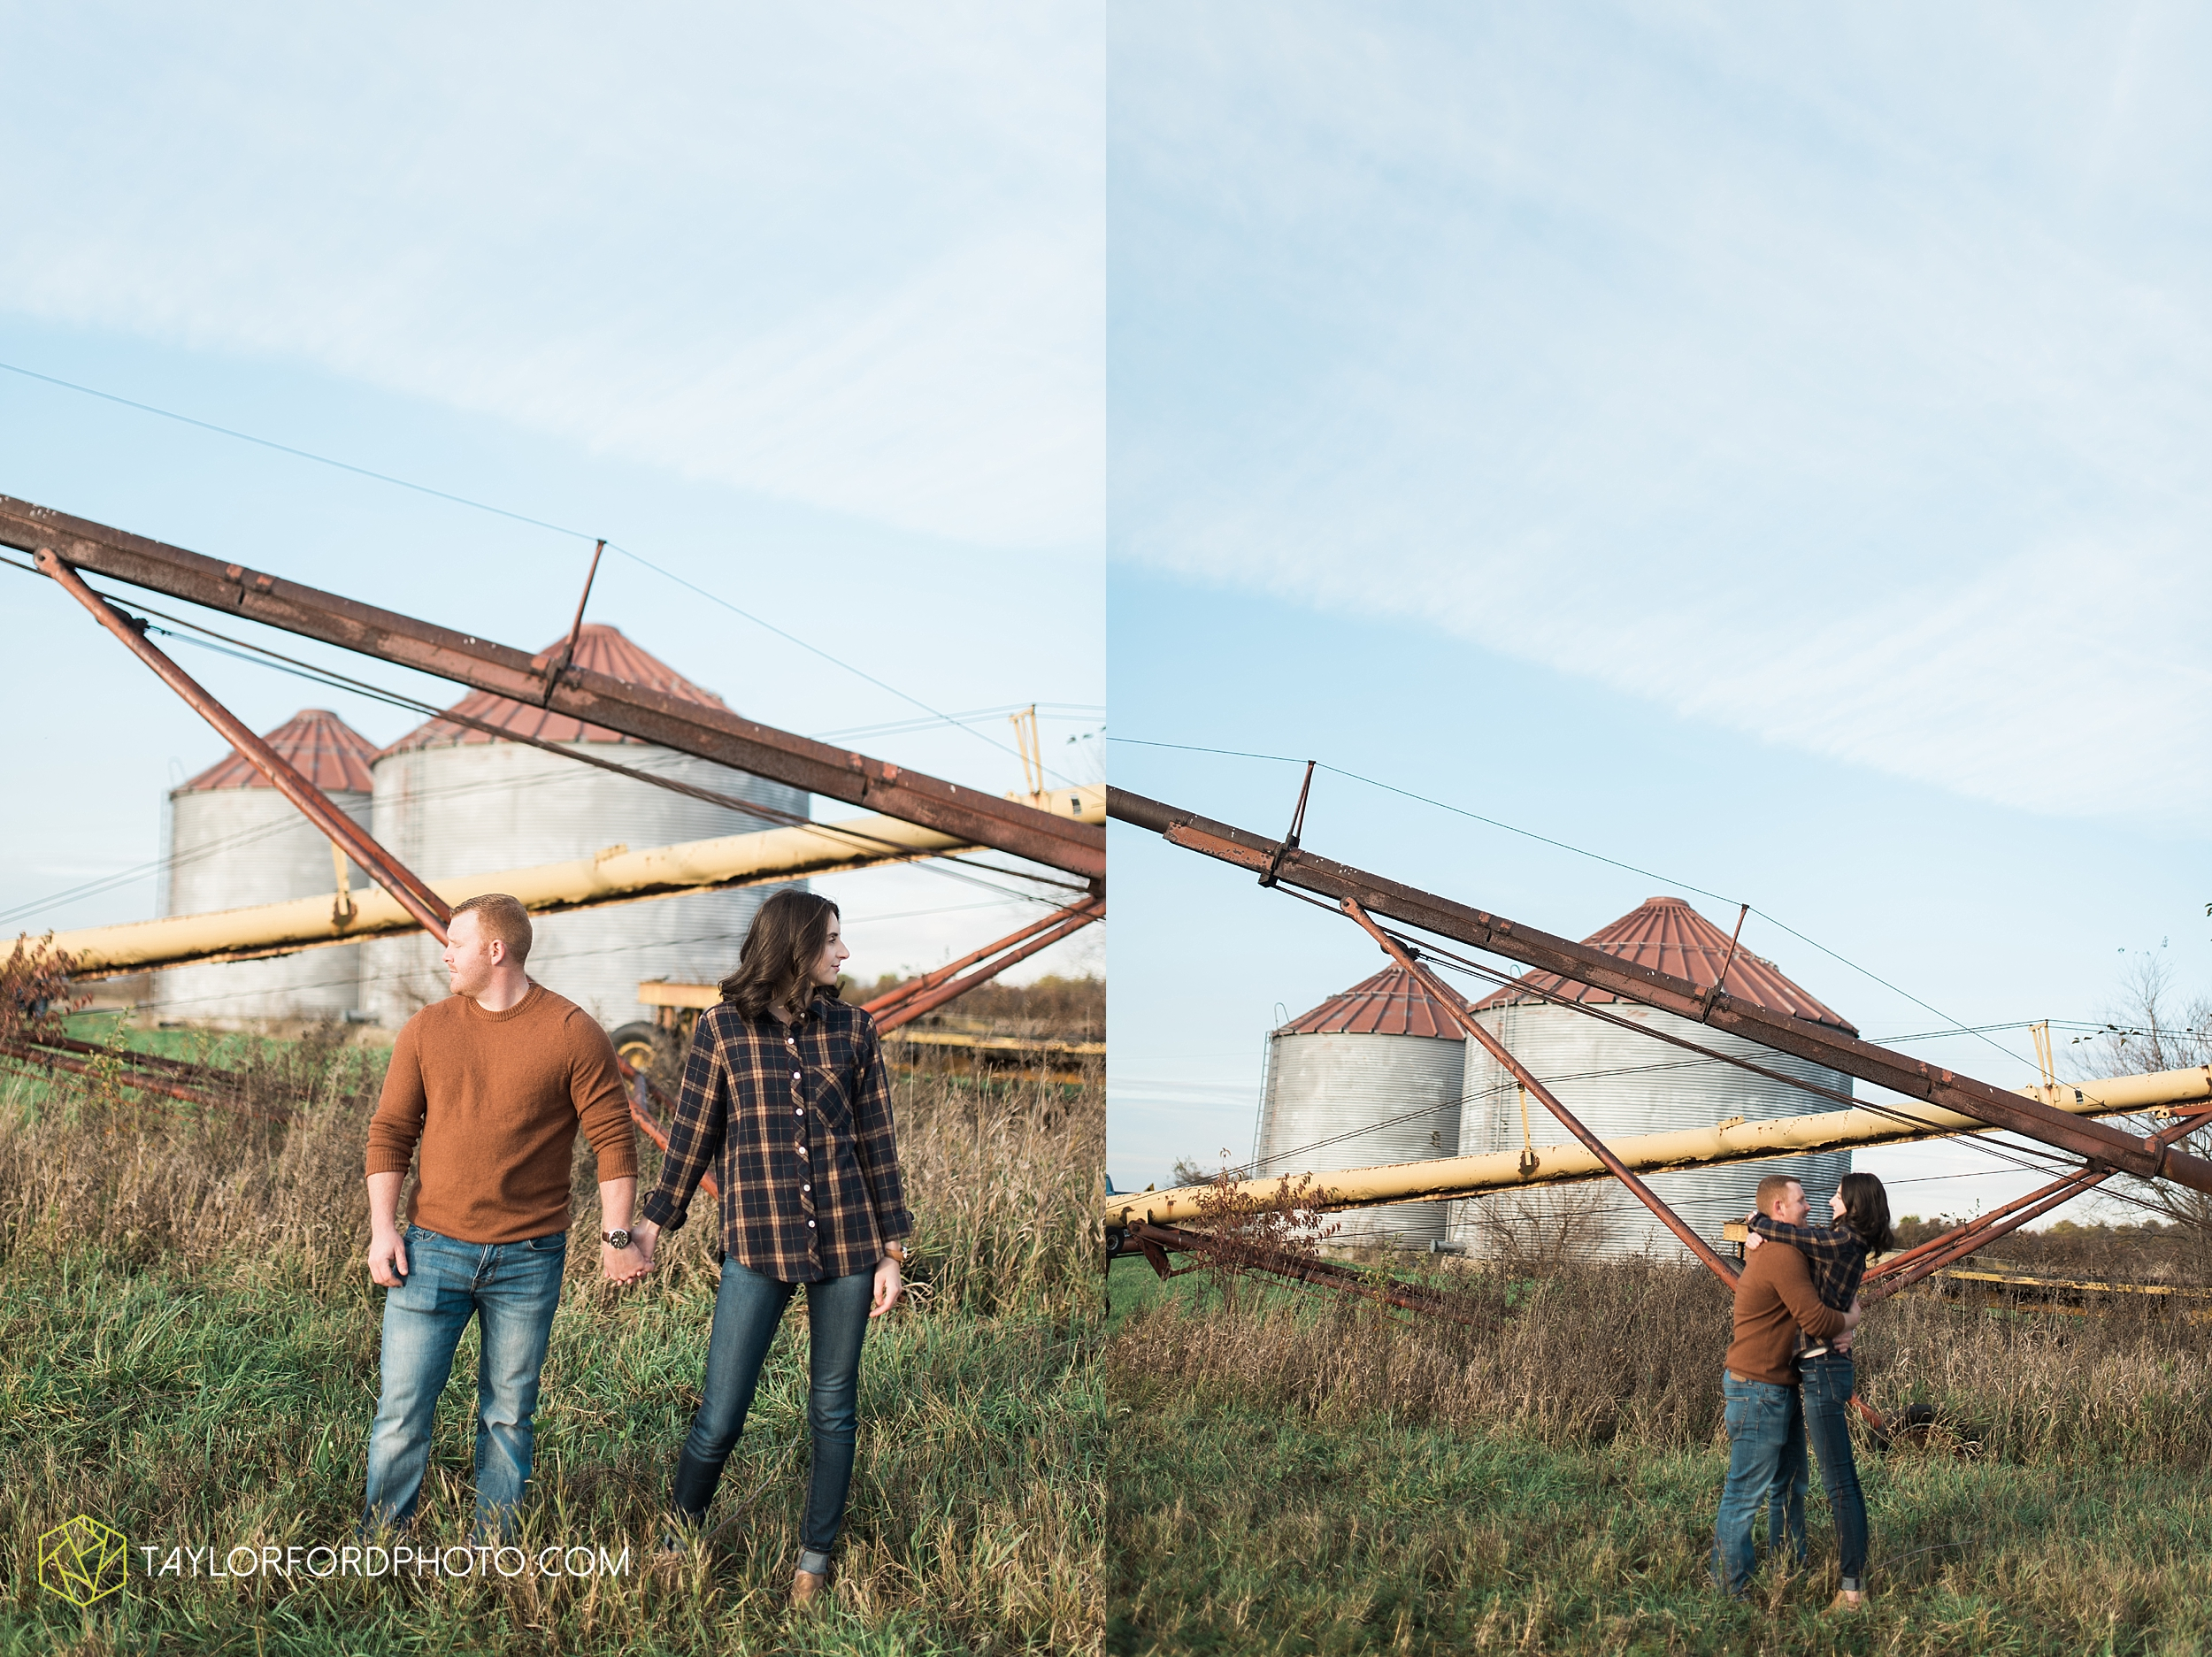 van-wert-ohio-engagement-photography-farm-life-photographer-Taylor-Ford-Photography_4533.jpg